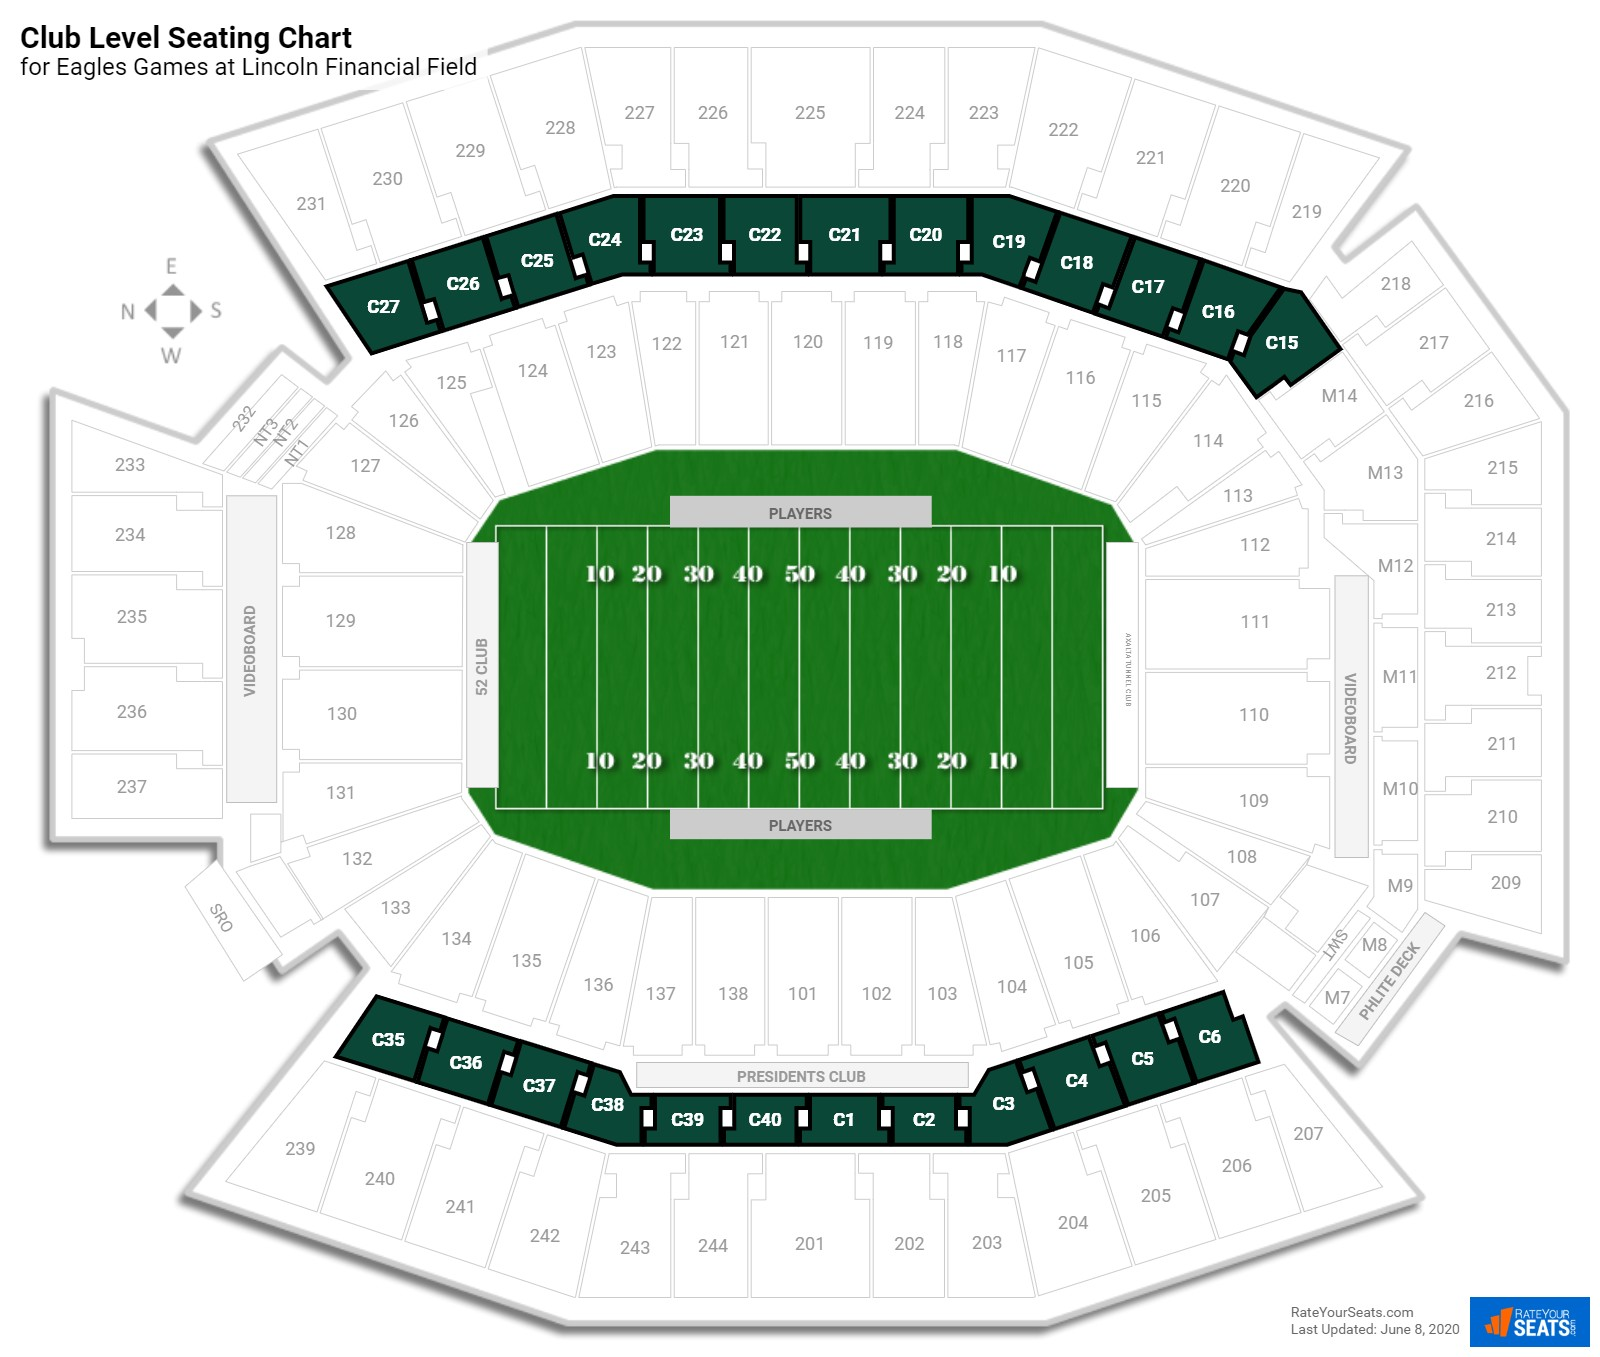 Lincoln Financial Field Club Level seating chart